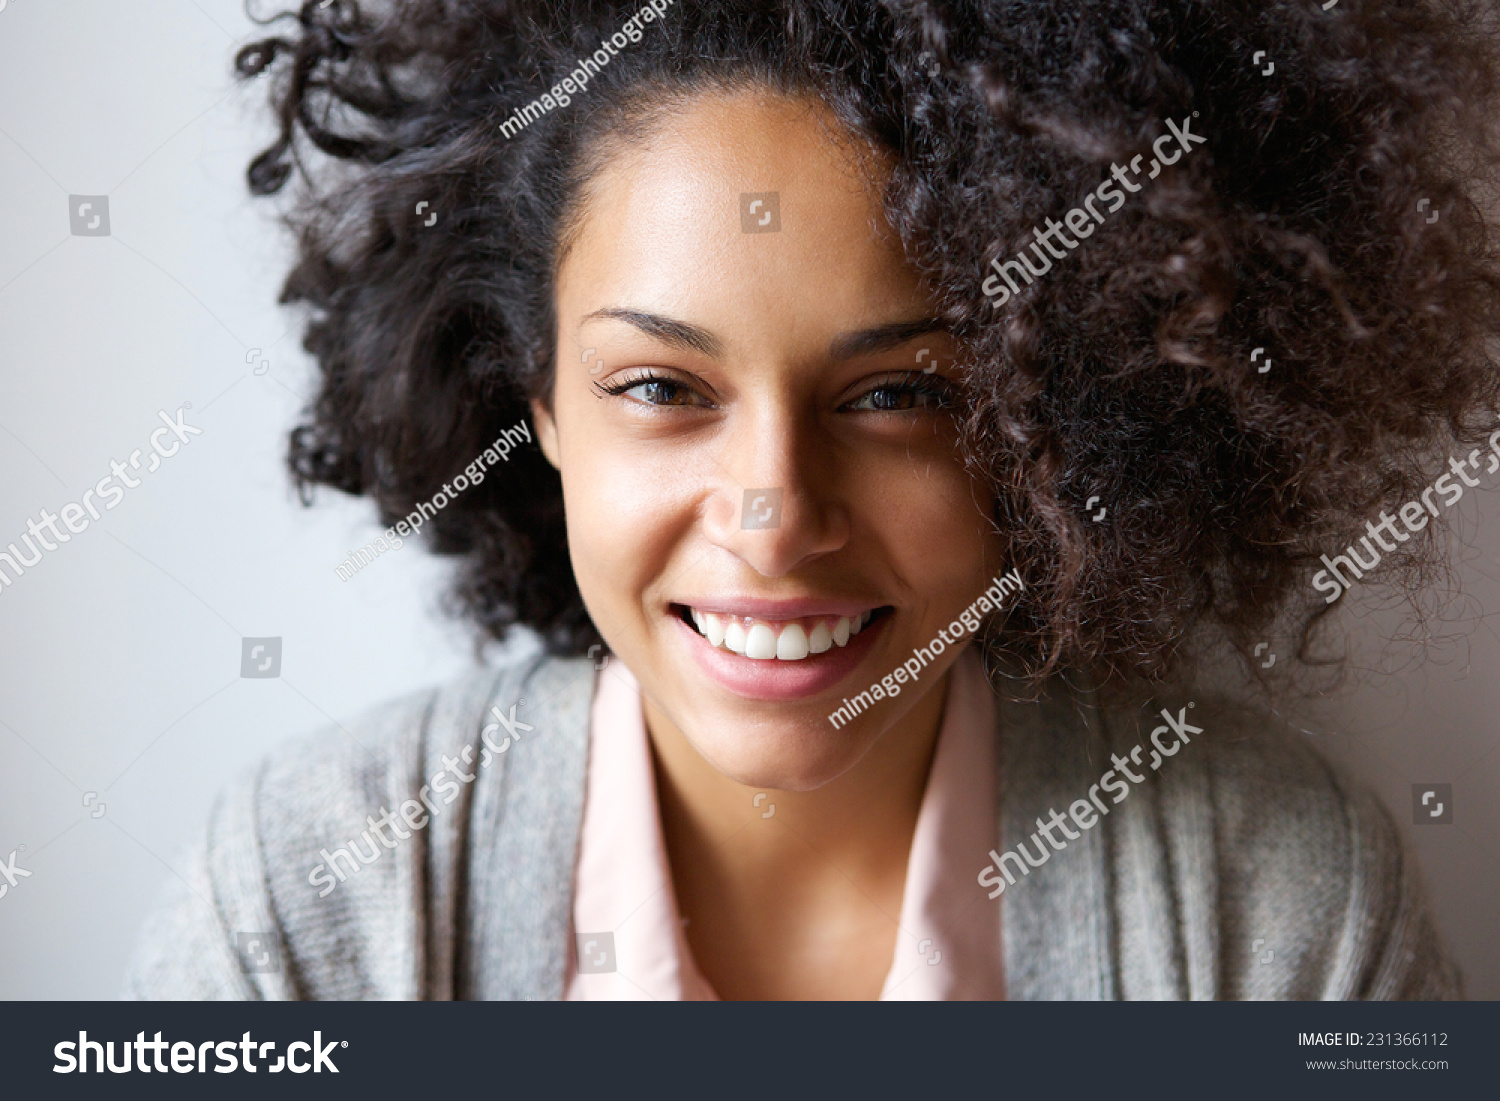 Close up portrait of a beautiful young african american woman smiling #231366112 - 123PhotoFree.com